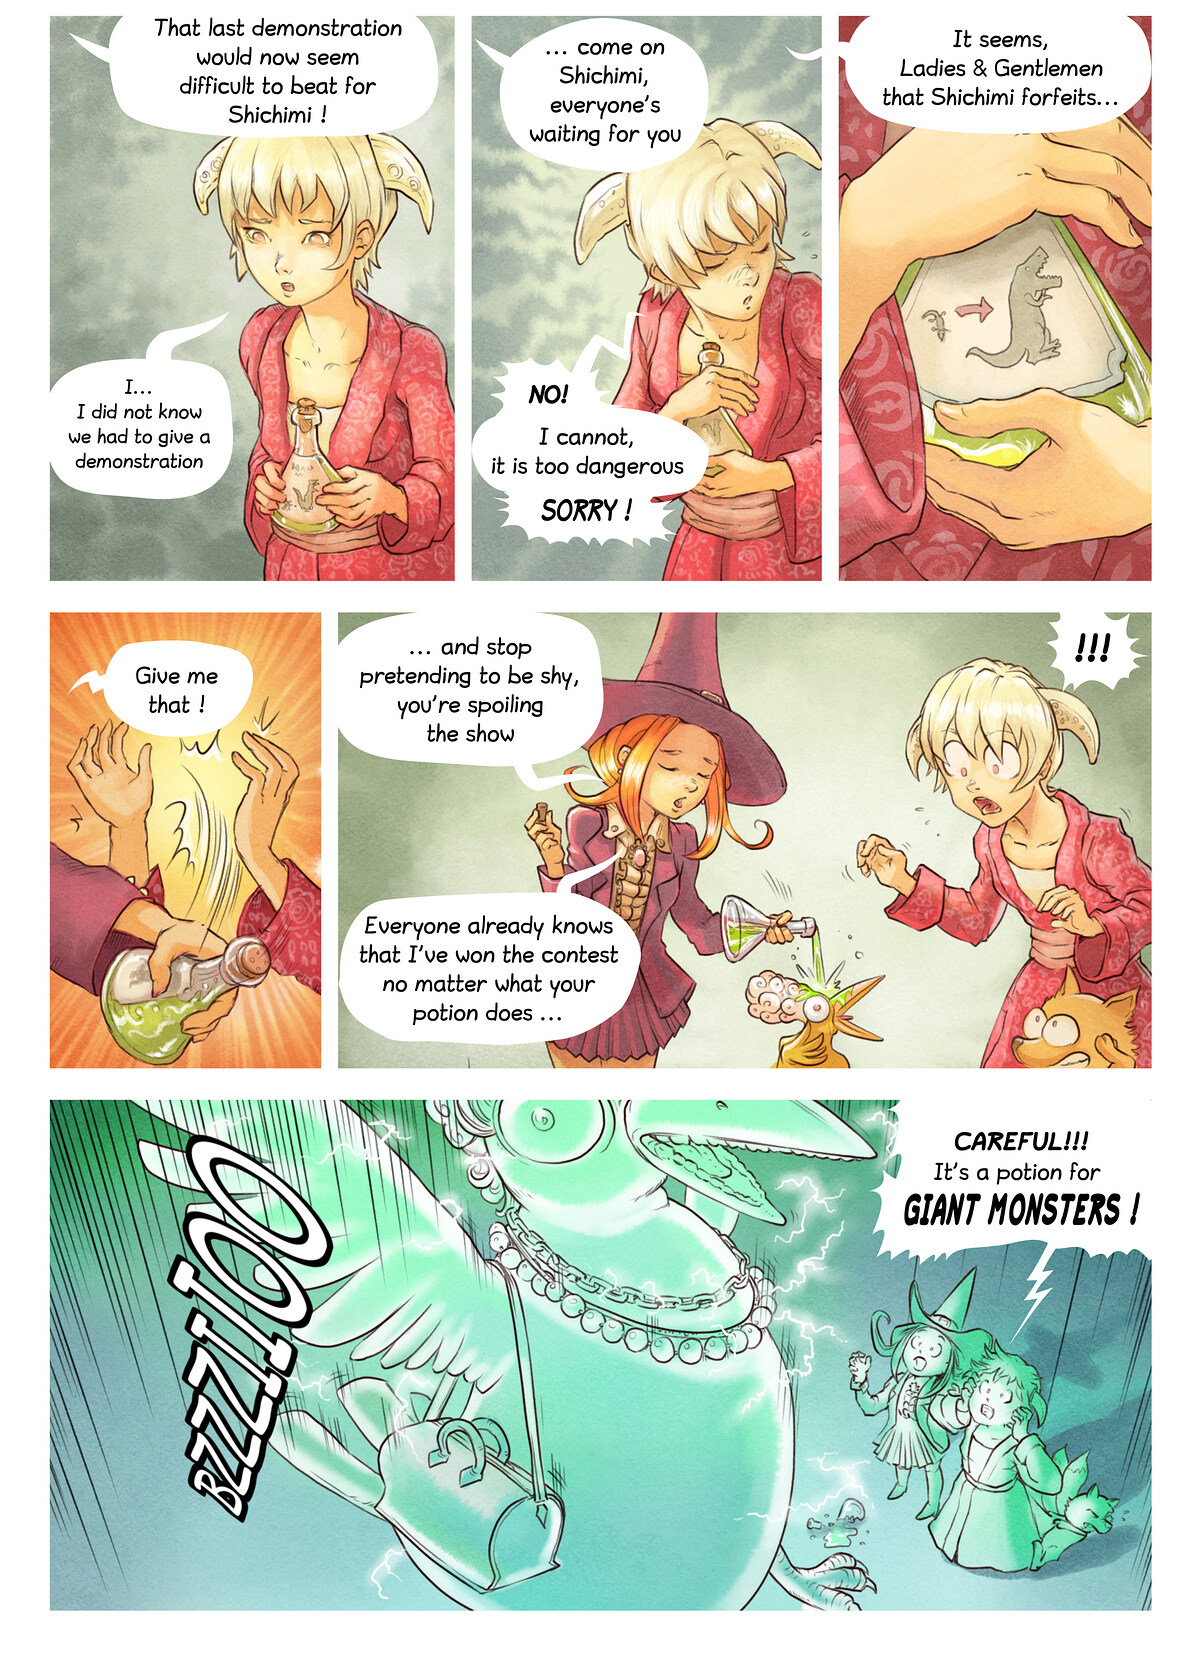 A webcomic page of Pepper&Carrot, episode 6 [ml], page 6